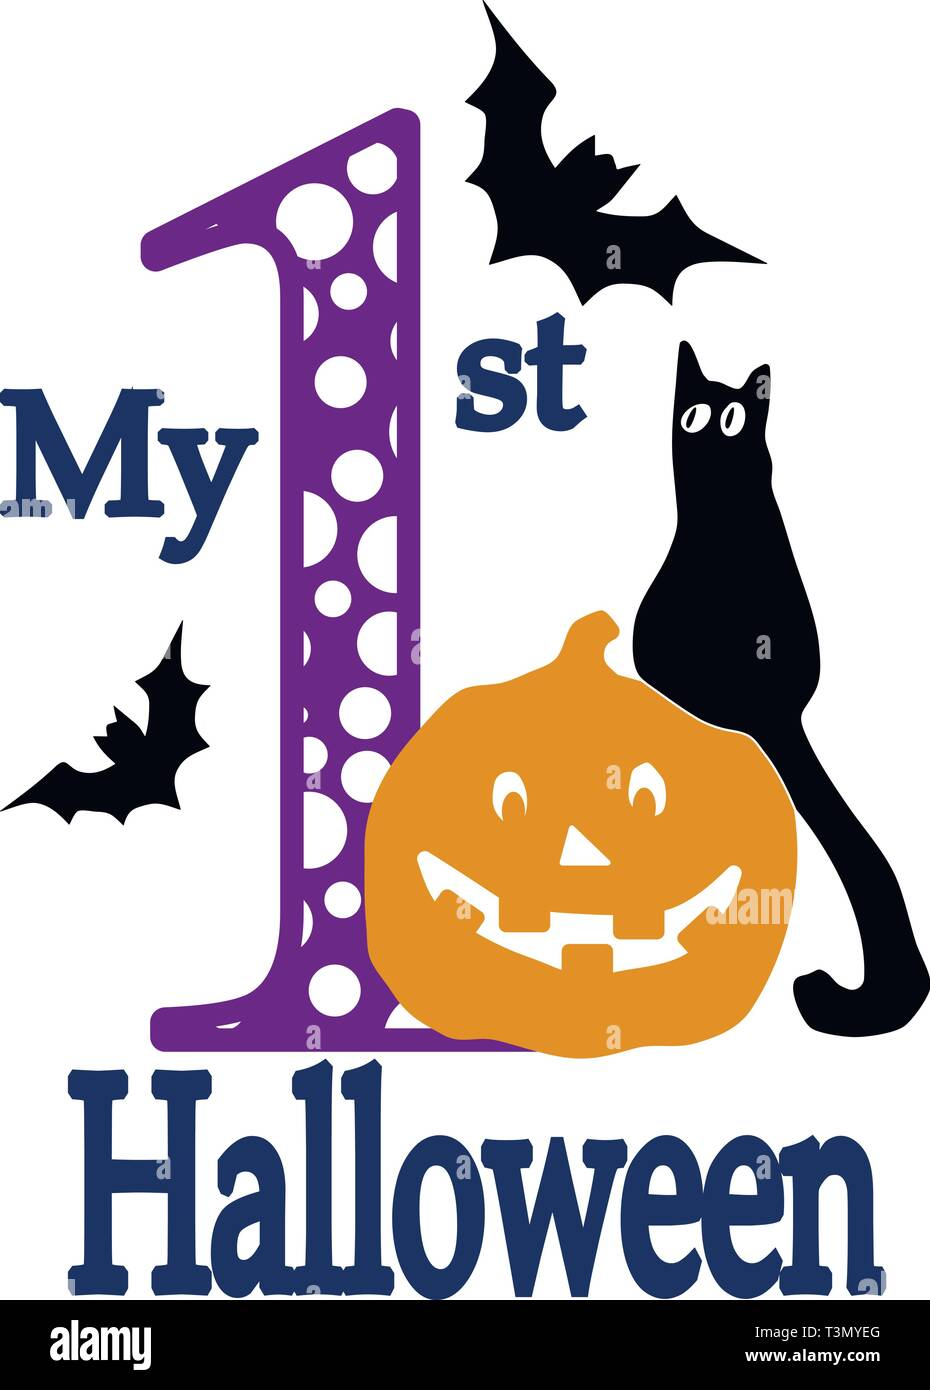 My First Halloween Clipart - Stock Vector